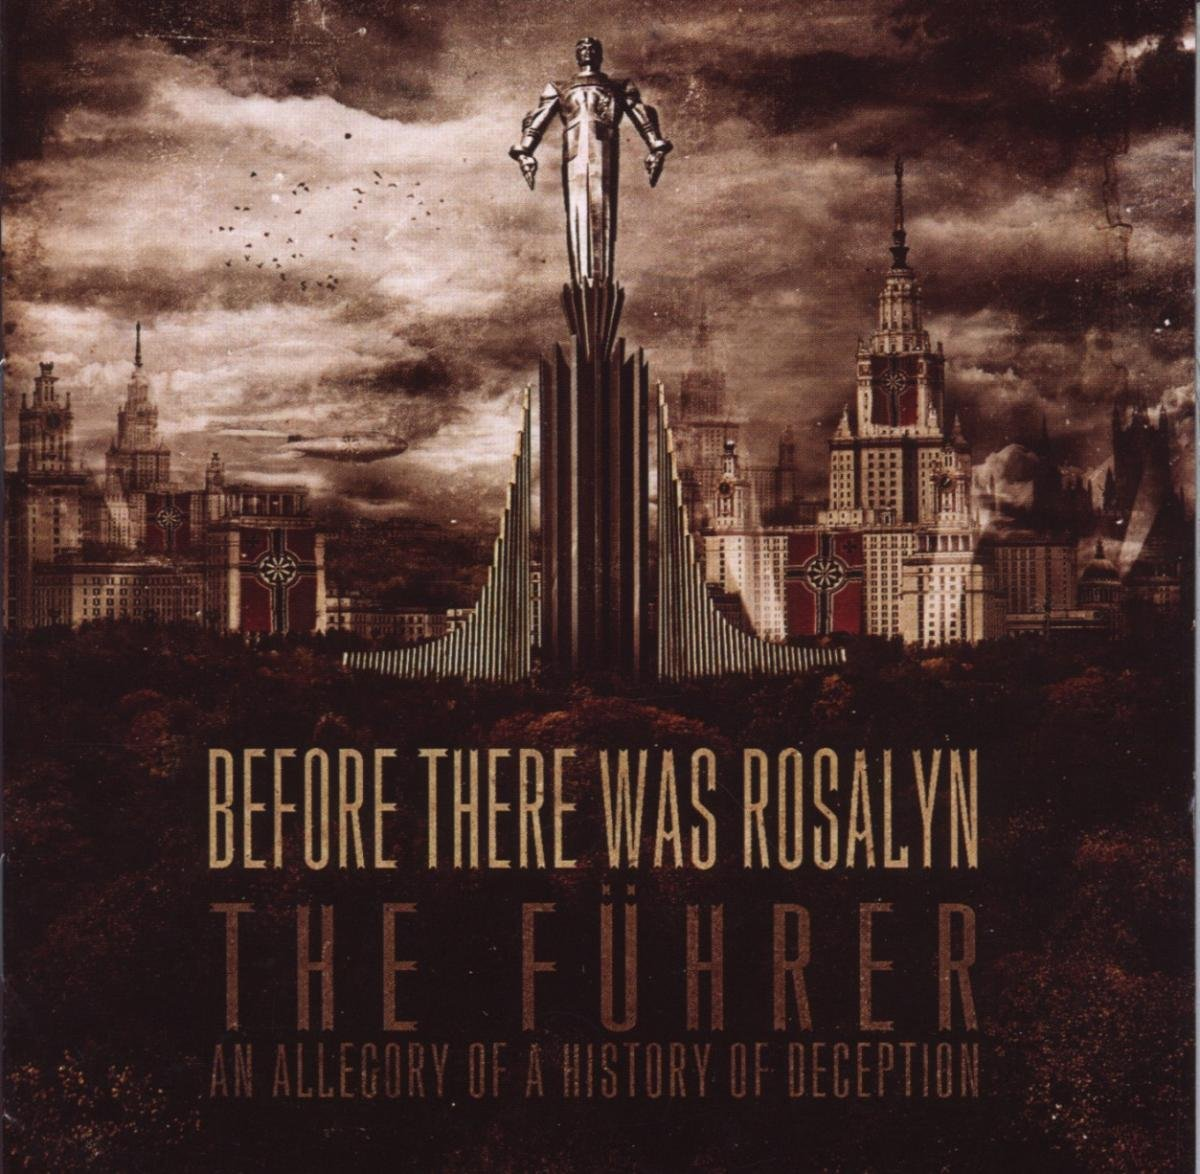 CD : Before There Was Rosalyn - The Fuhrer (CD)